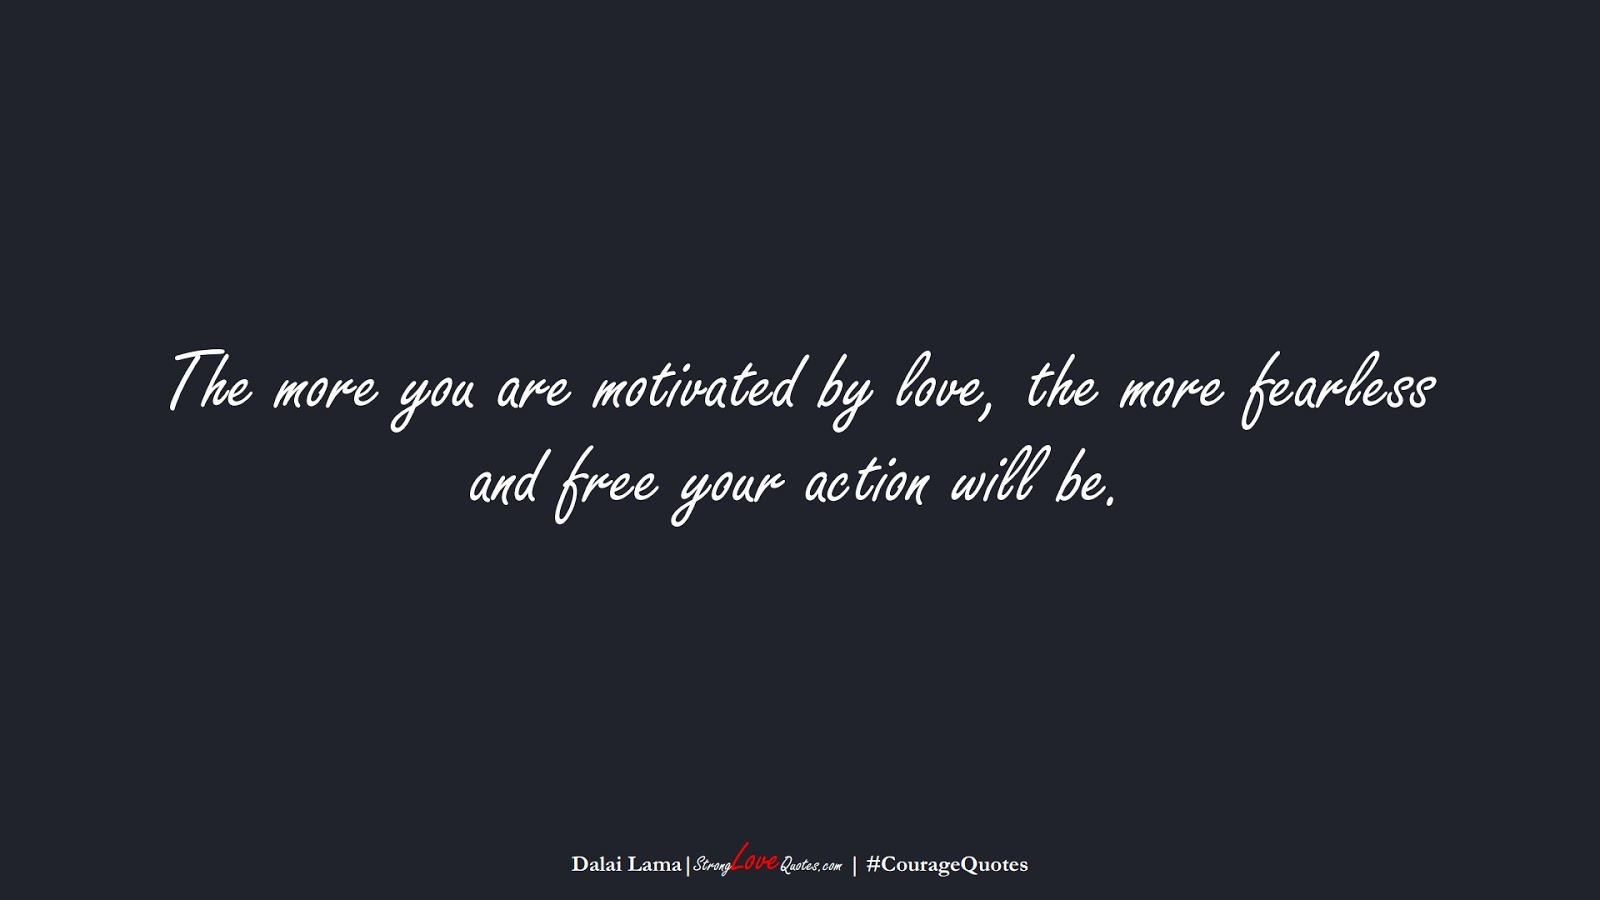 The more you are motivated by love, the more fearless and free your action will be. (Dalai Lama);  #CourageQuotes